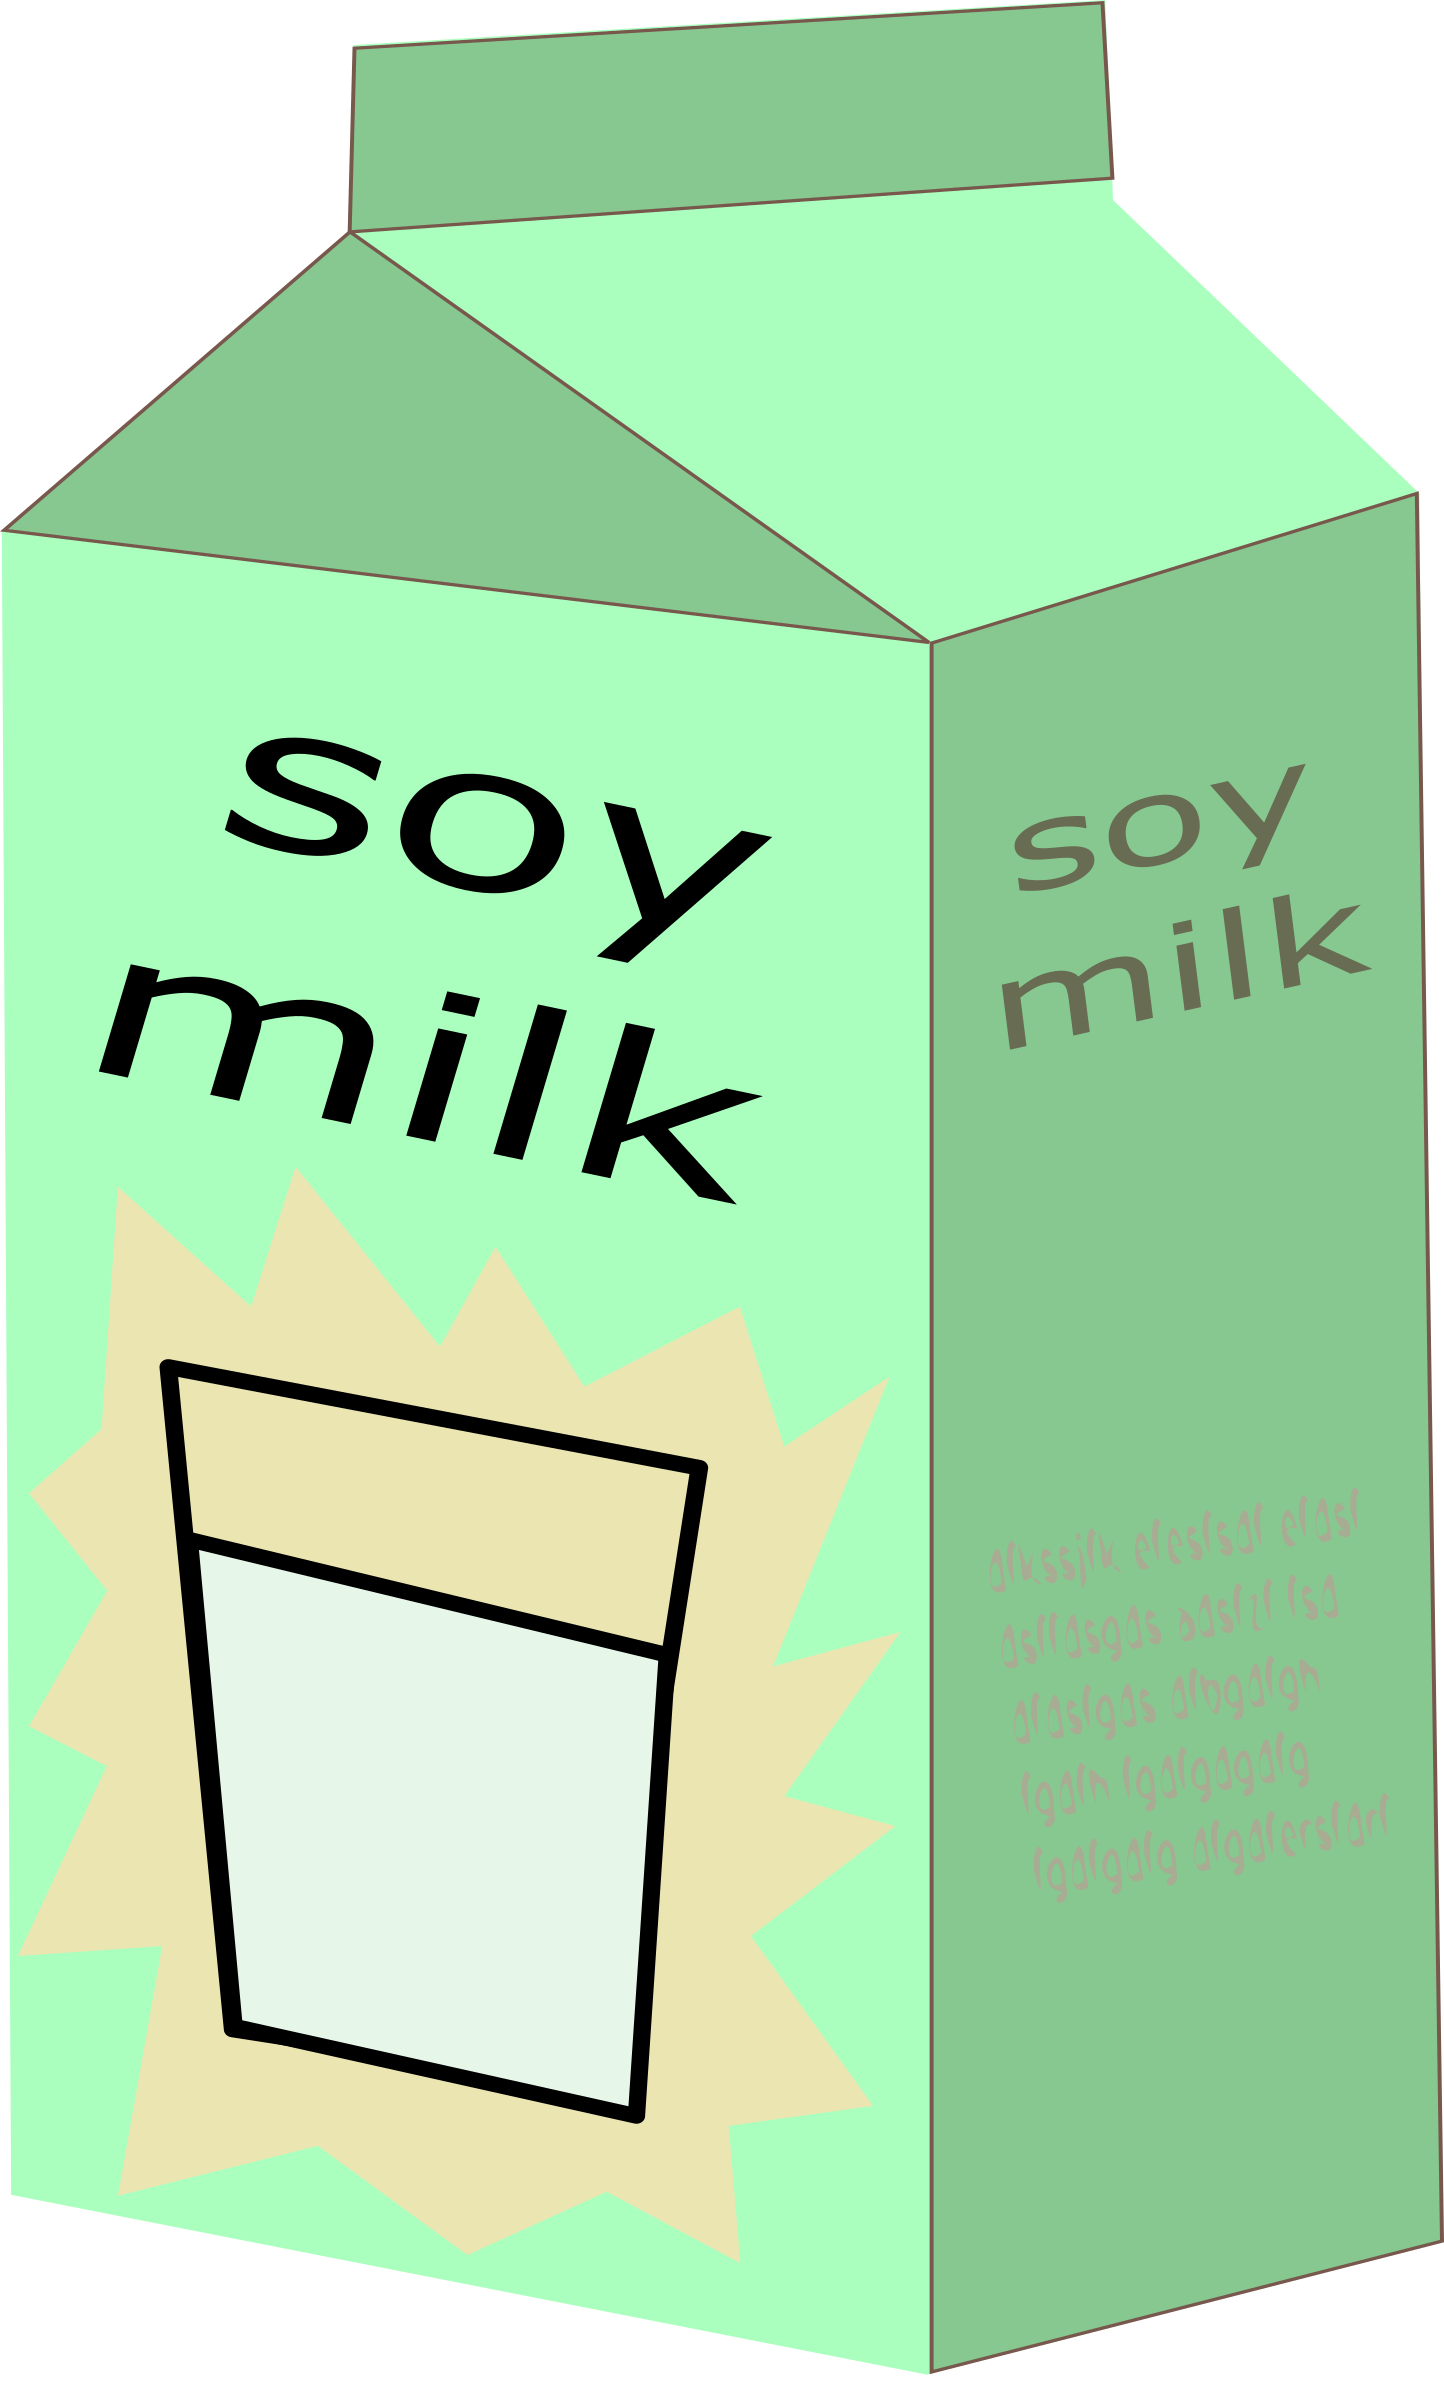 soy milk png